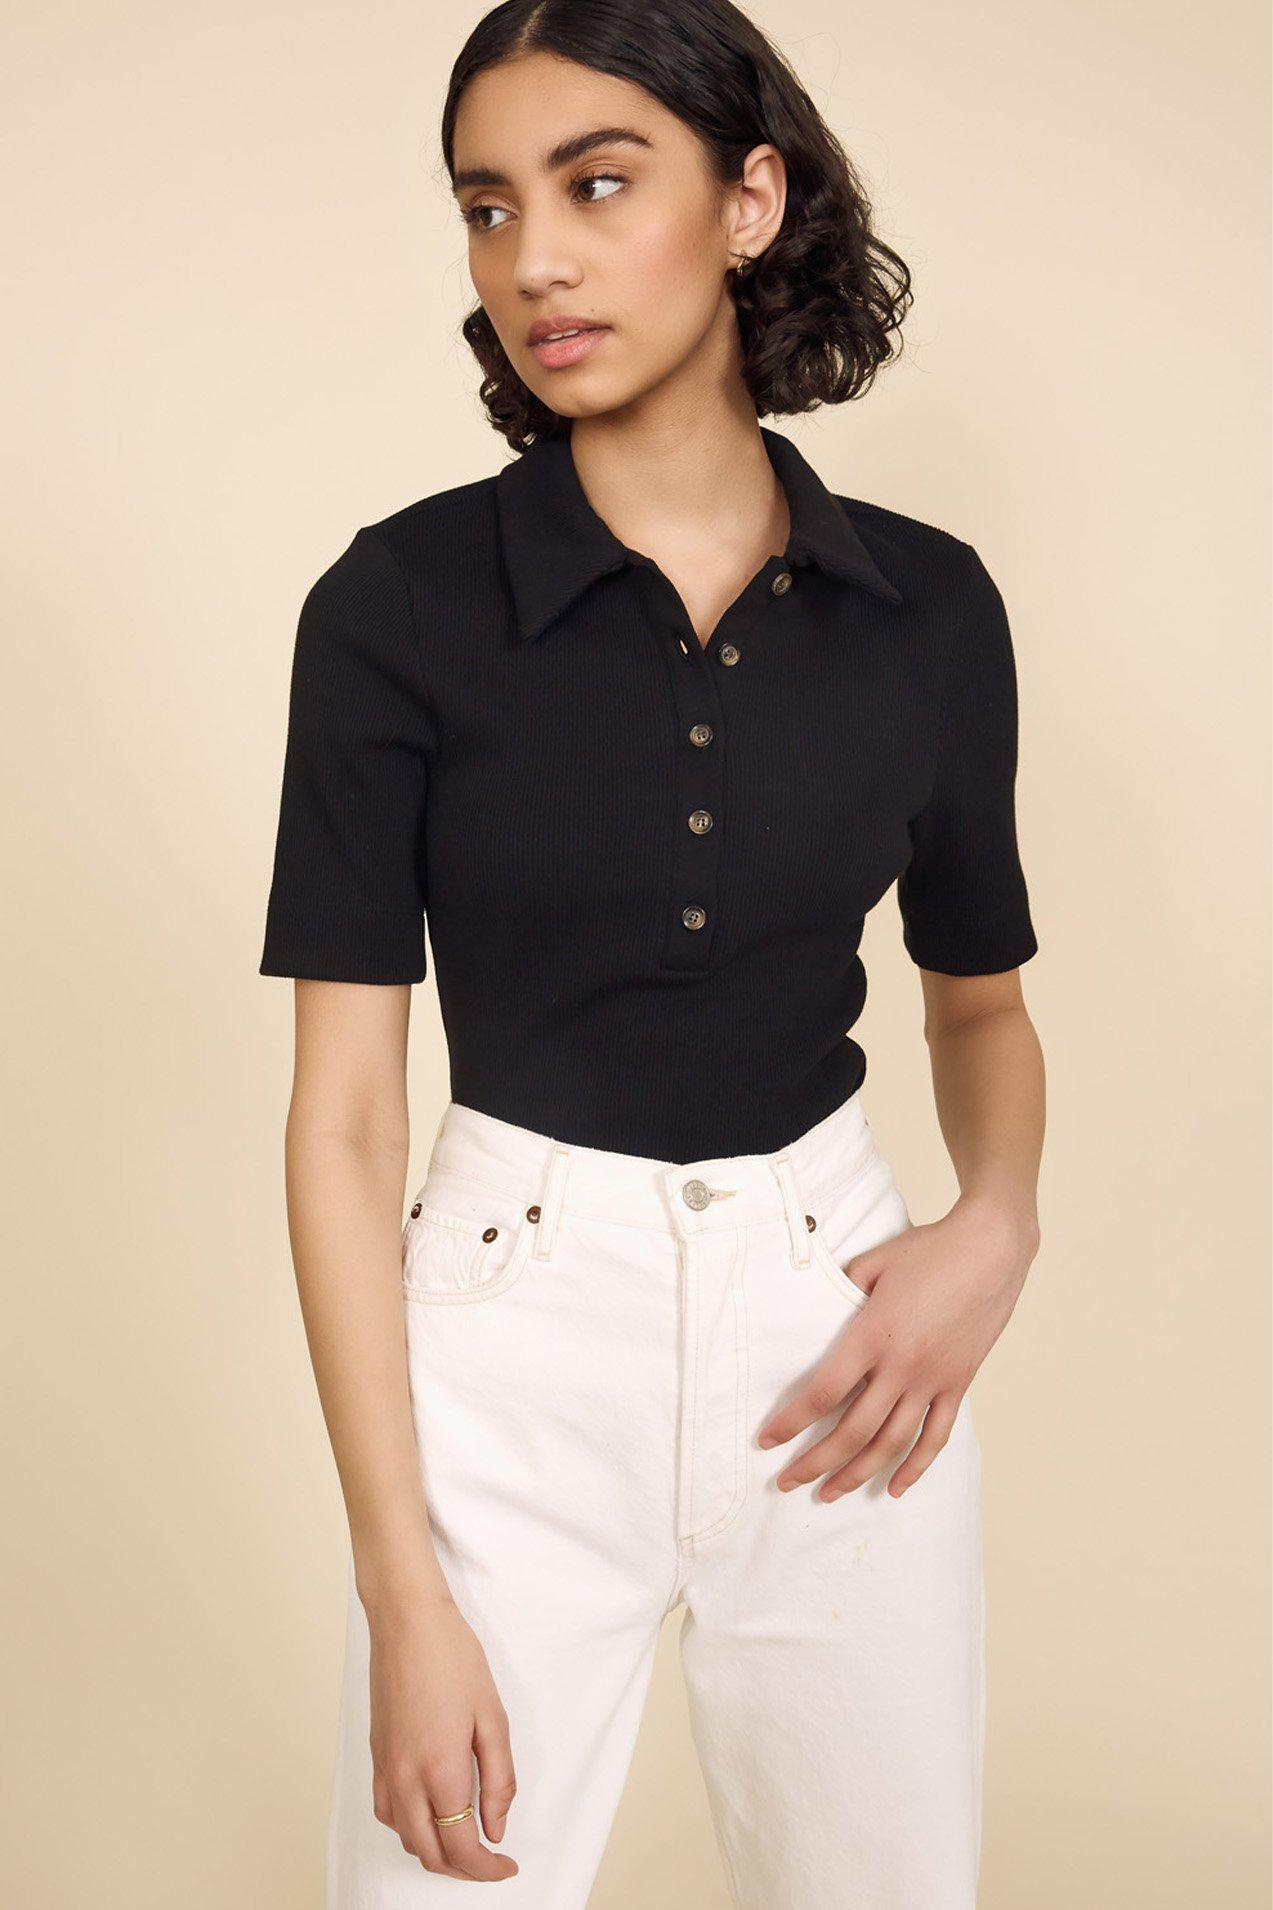 The Essential Polo in Black